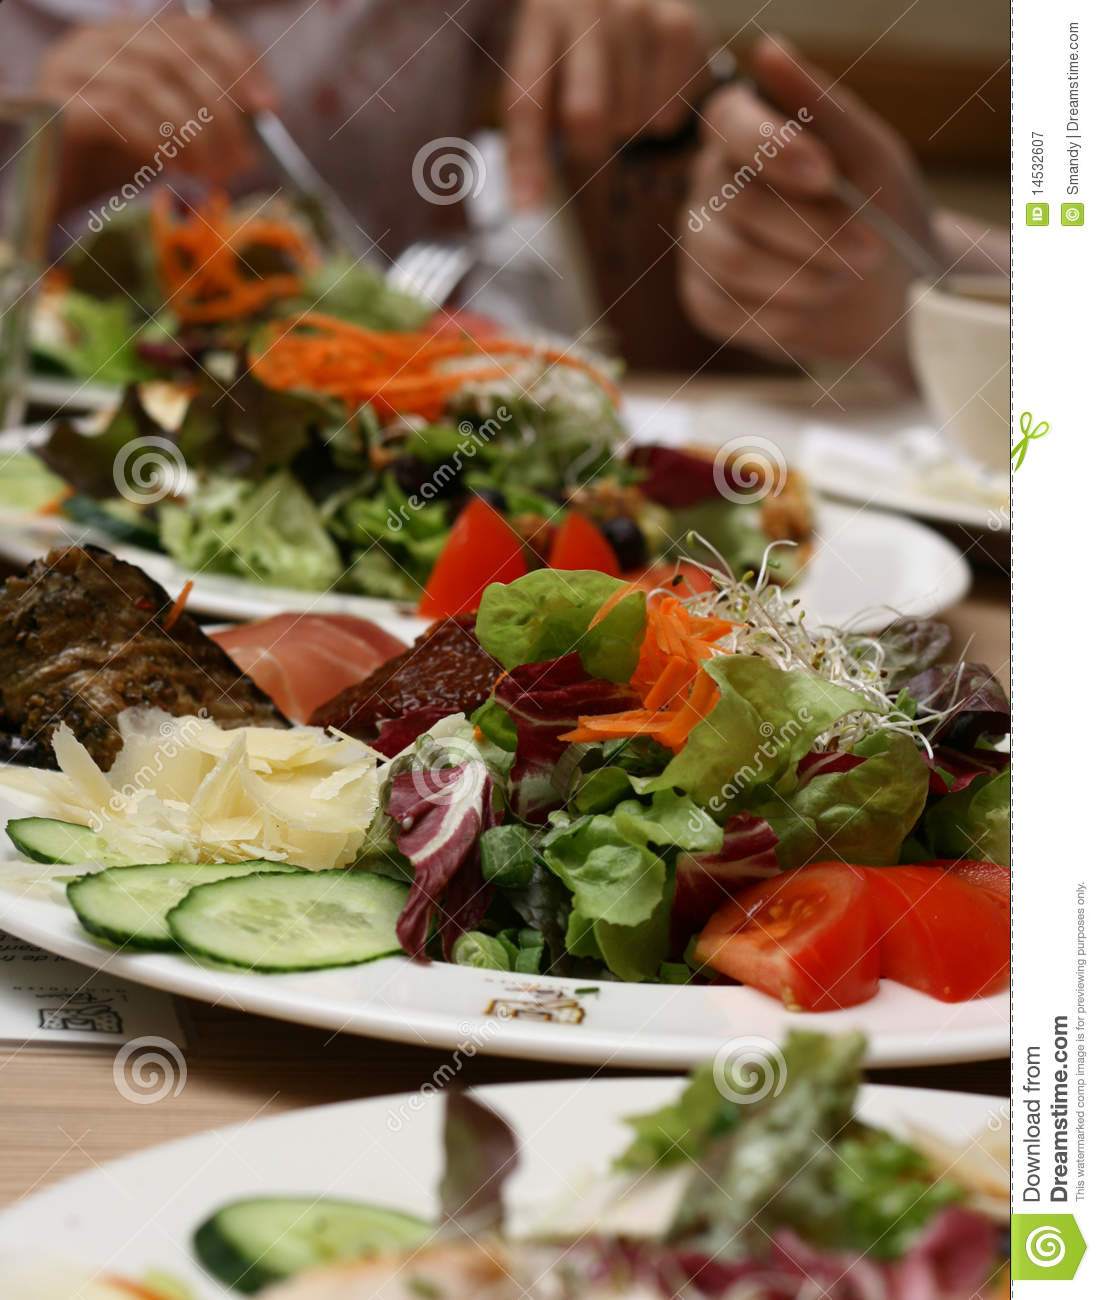 People Eating Healthy Organic Food Royalty Free Stock